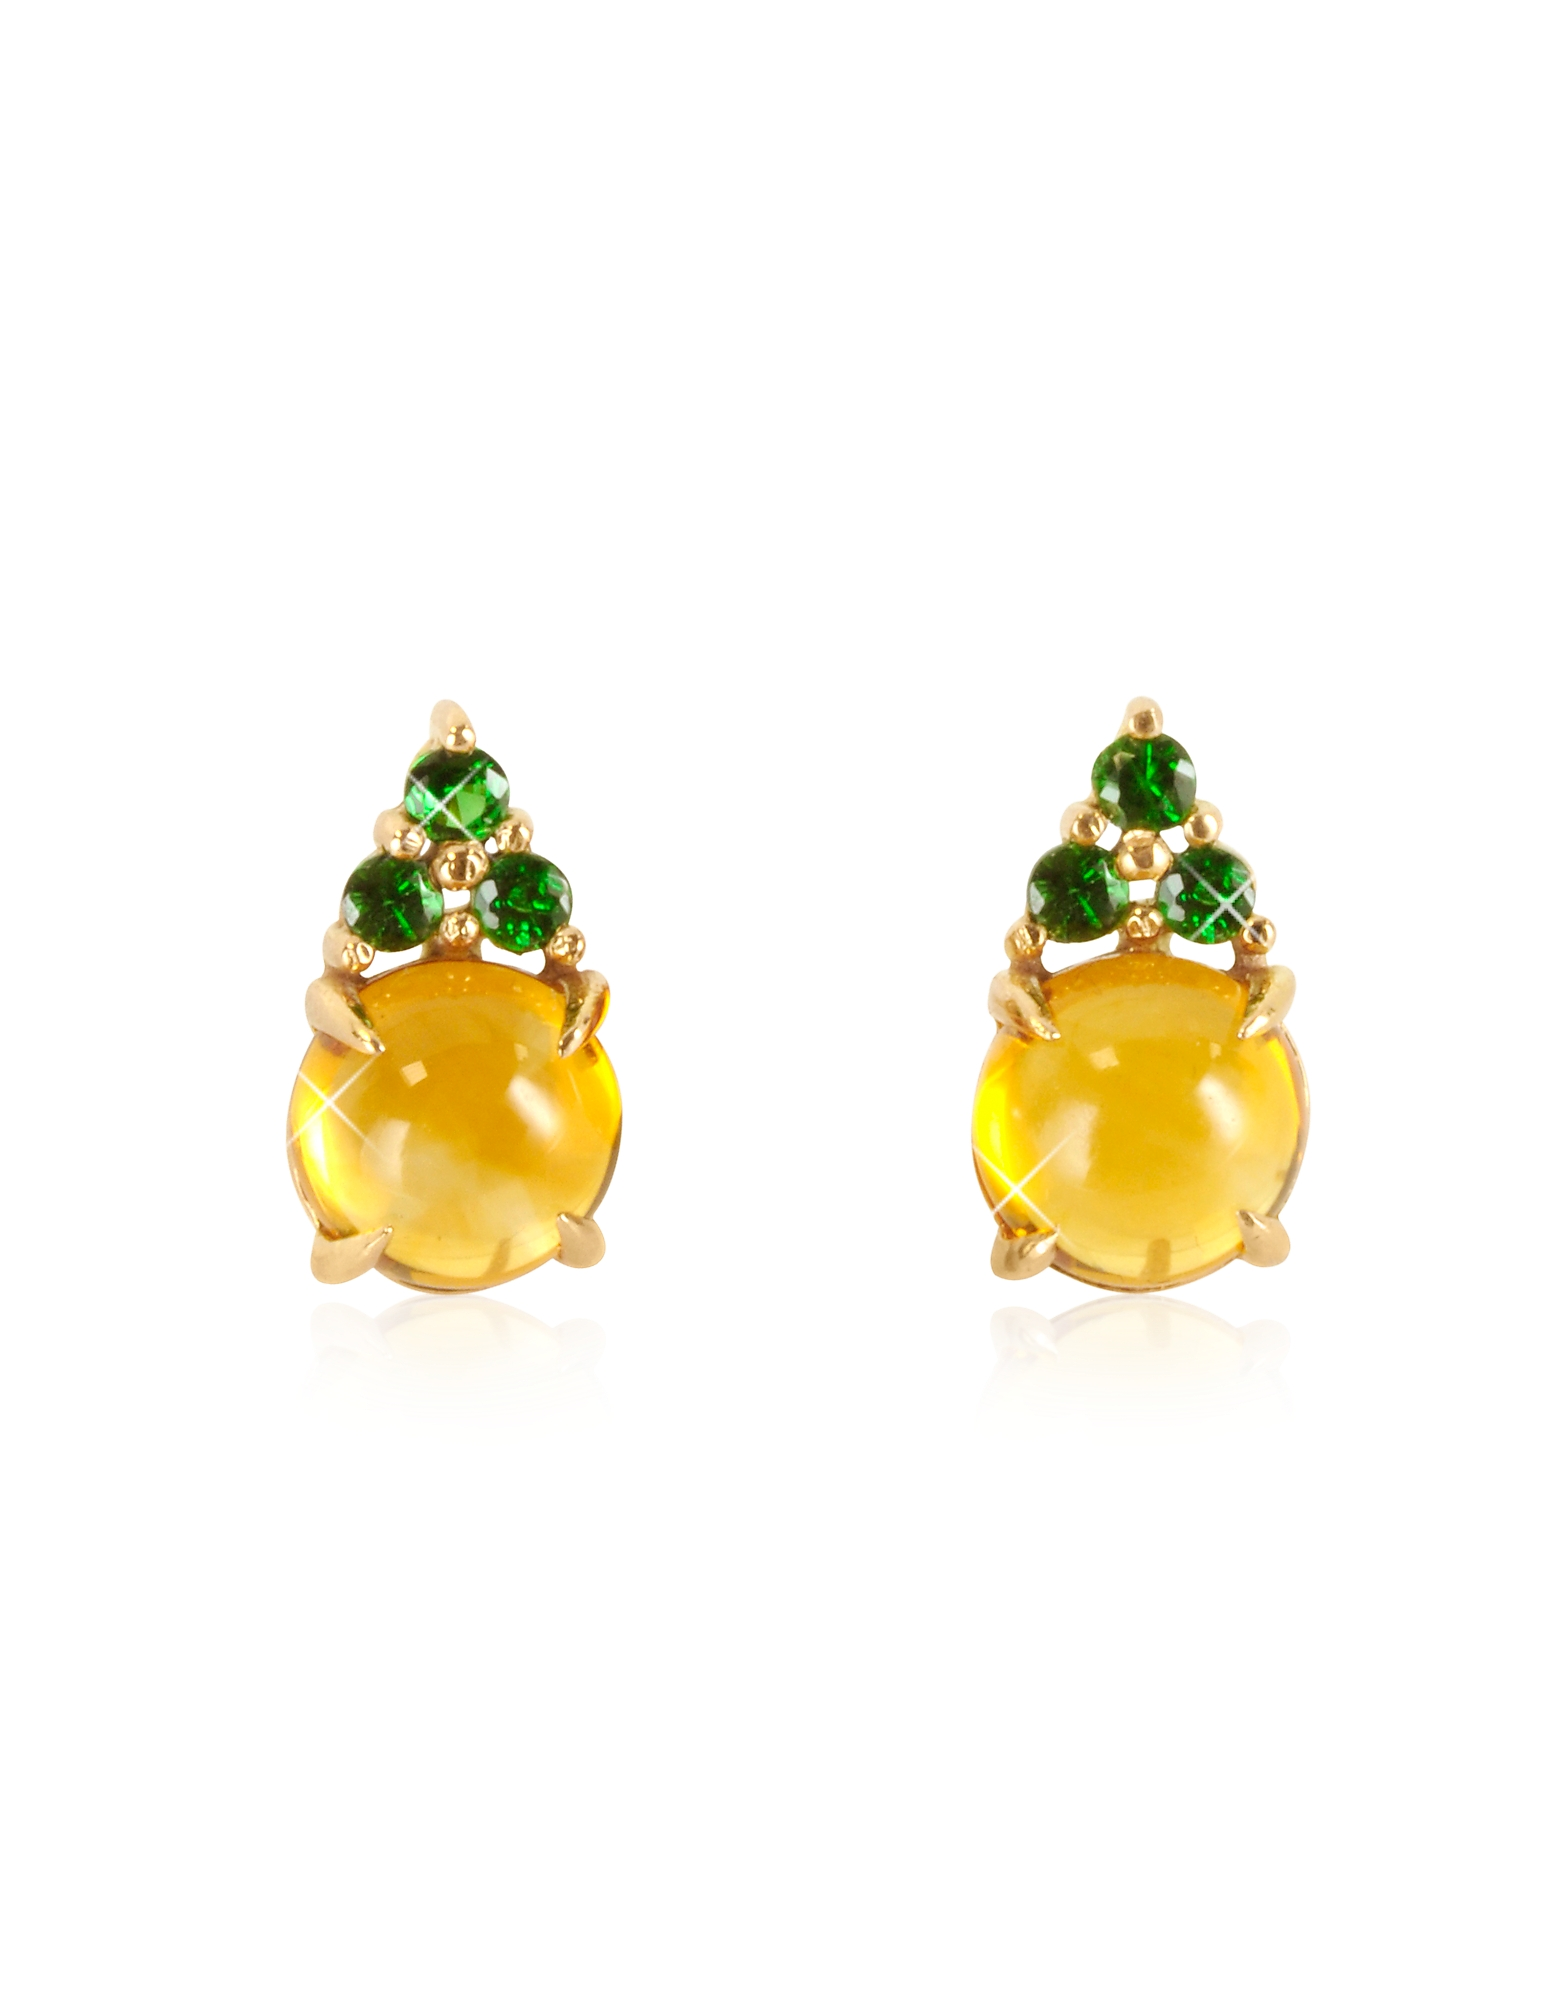 Mia & Beverly Earrings, Citrine Quartz and Green Sapphires 18K Rose Gold Earrings